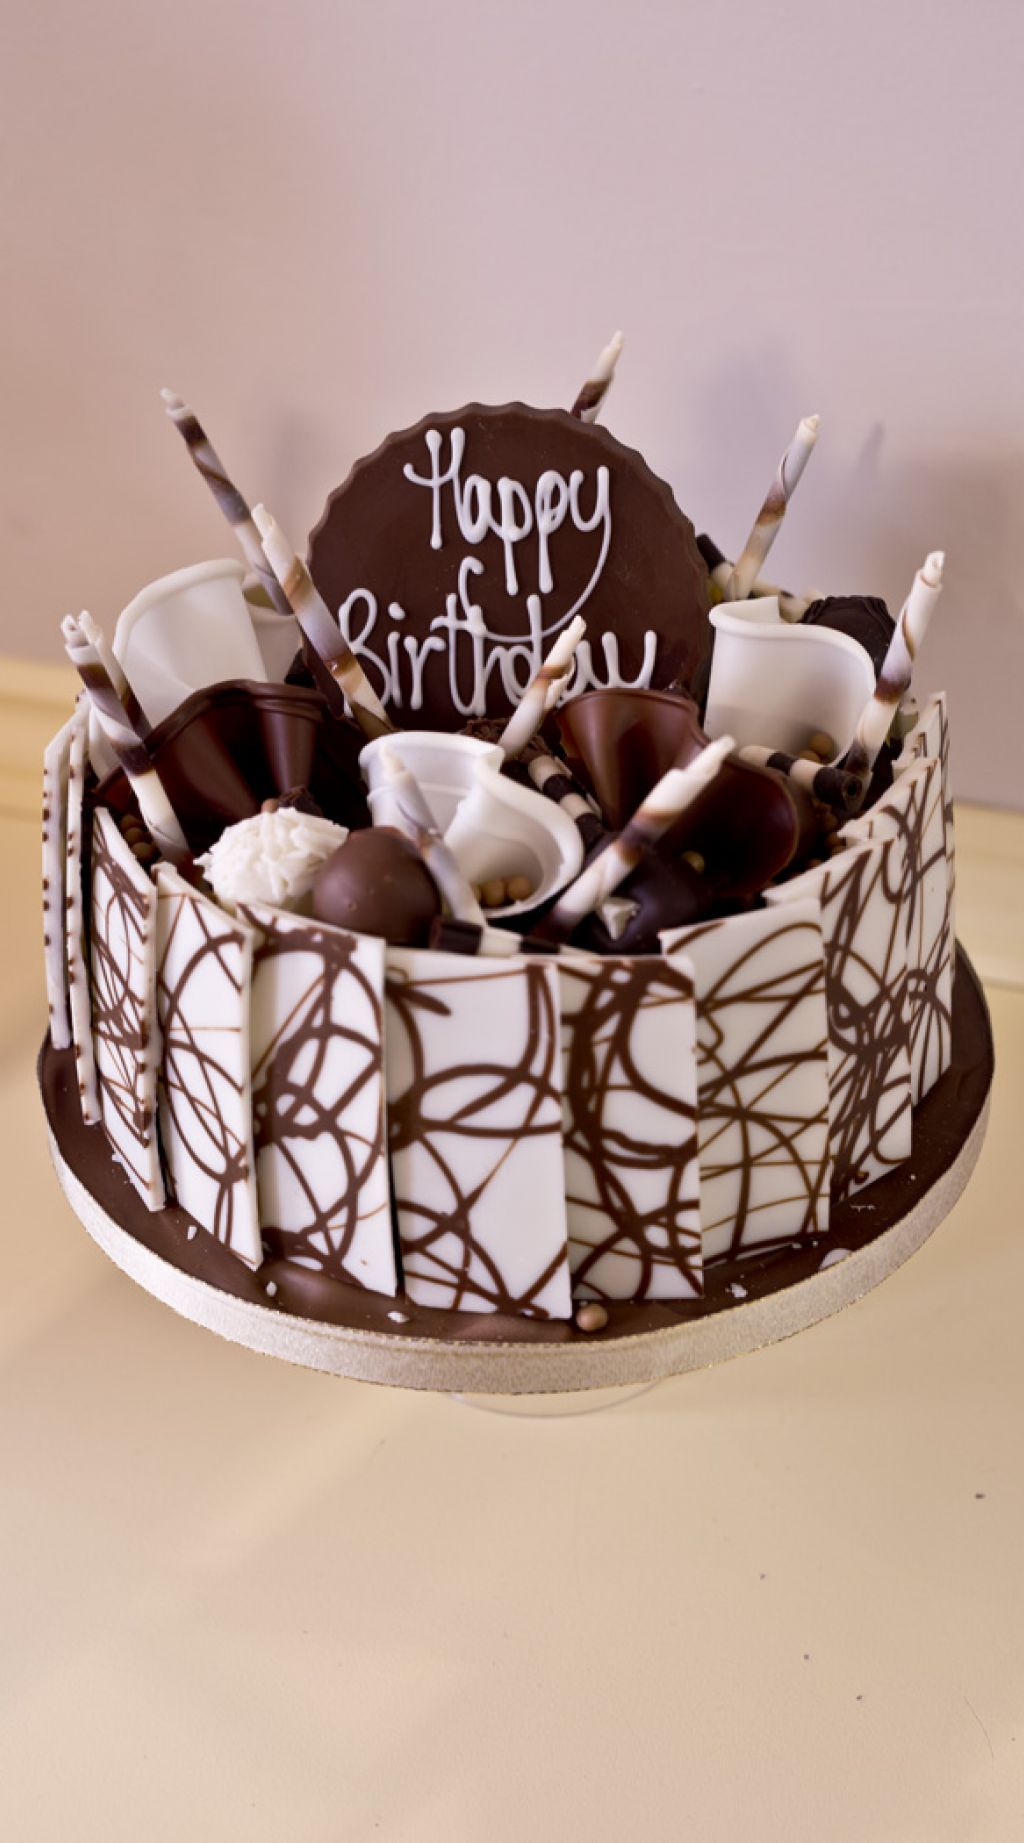 Happy Birthday Chocolate Cake Images Posted By Michelle Johnson